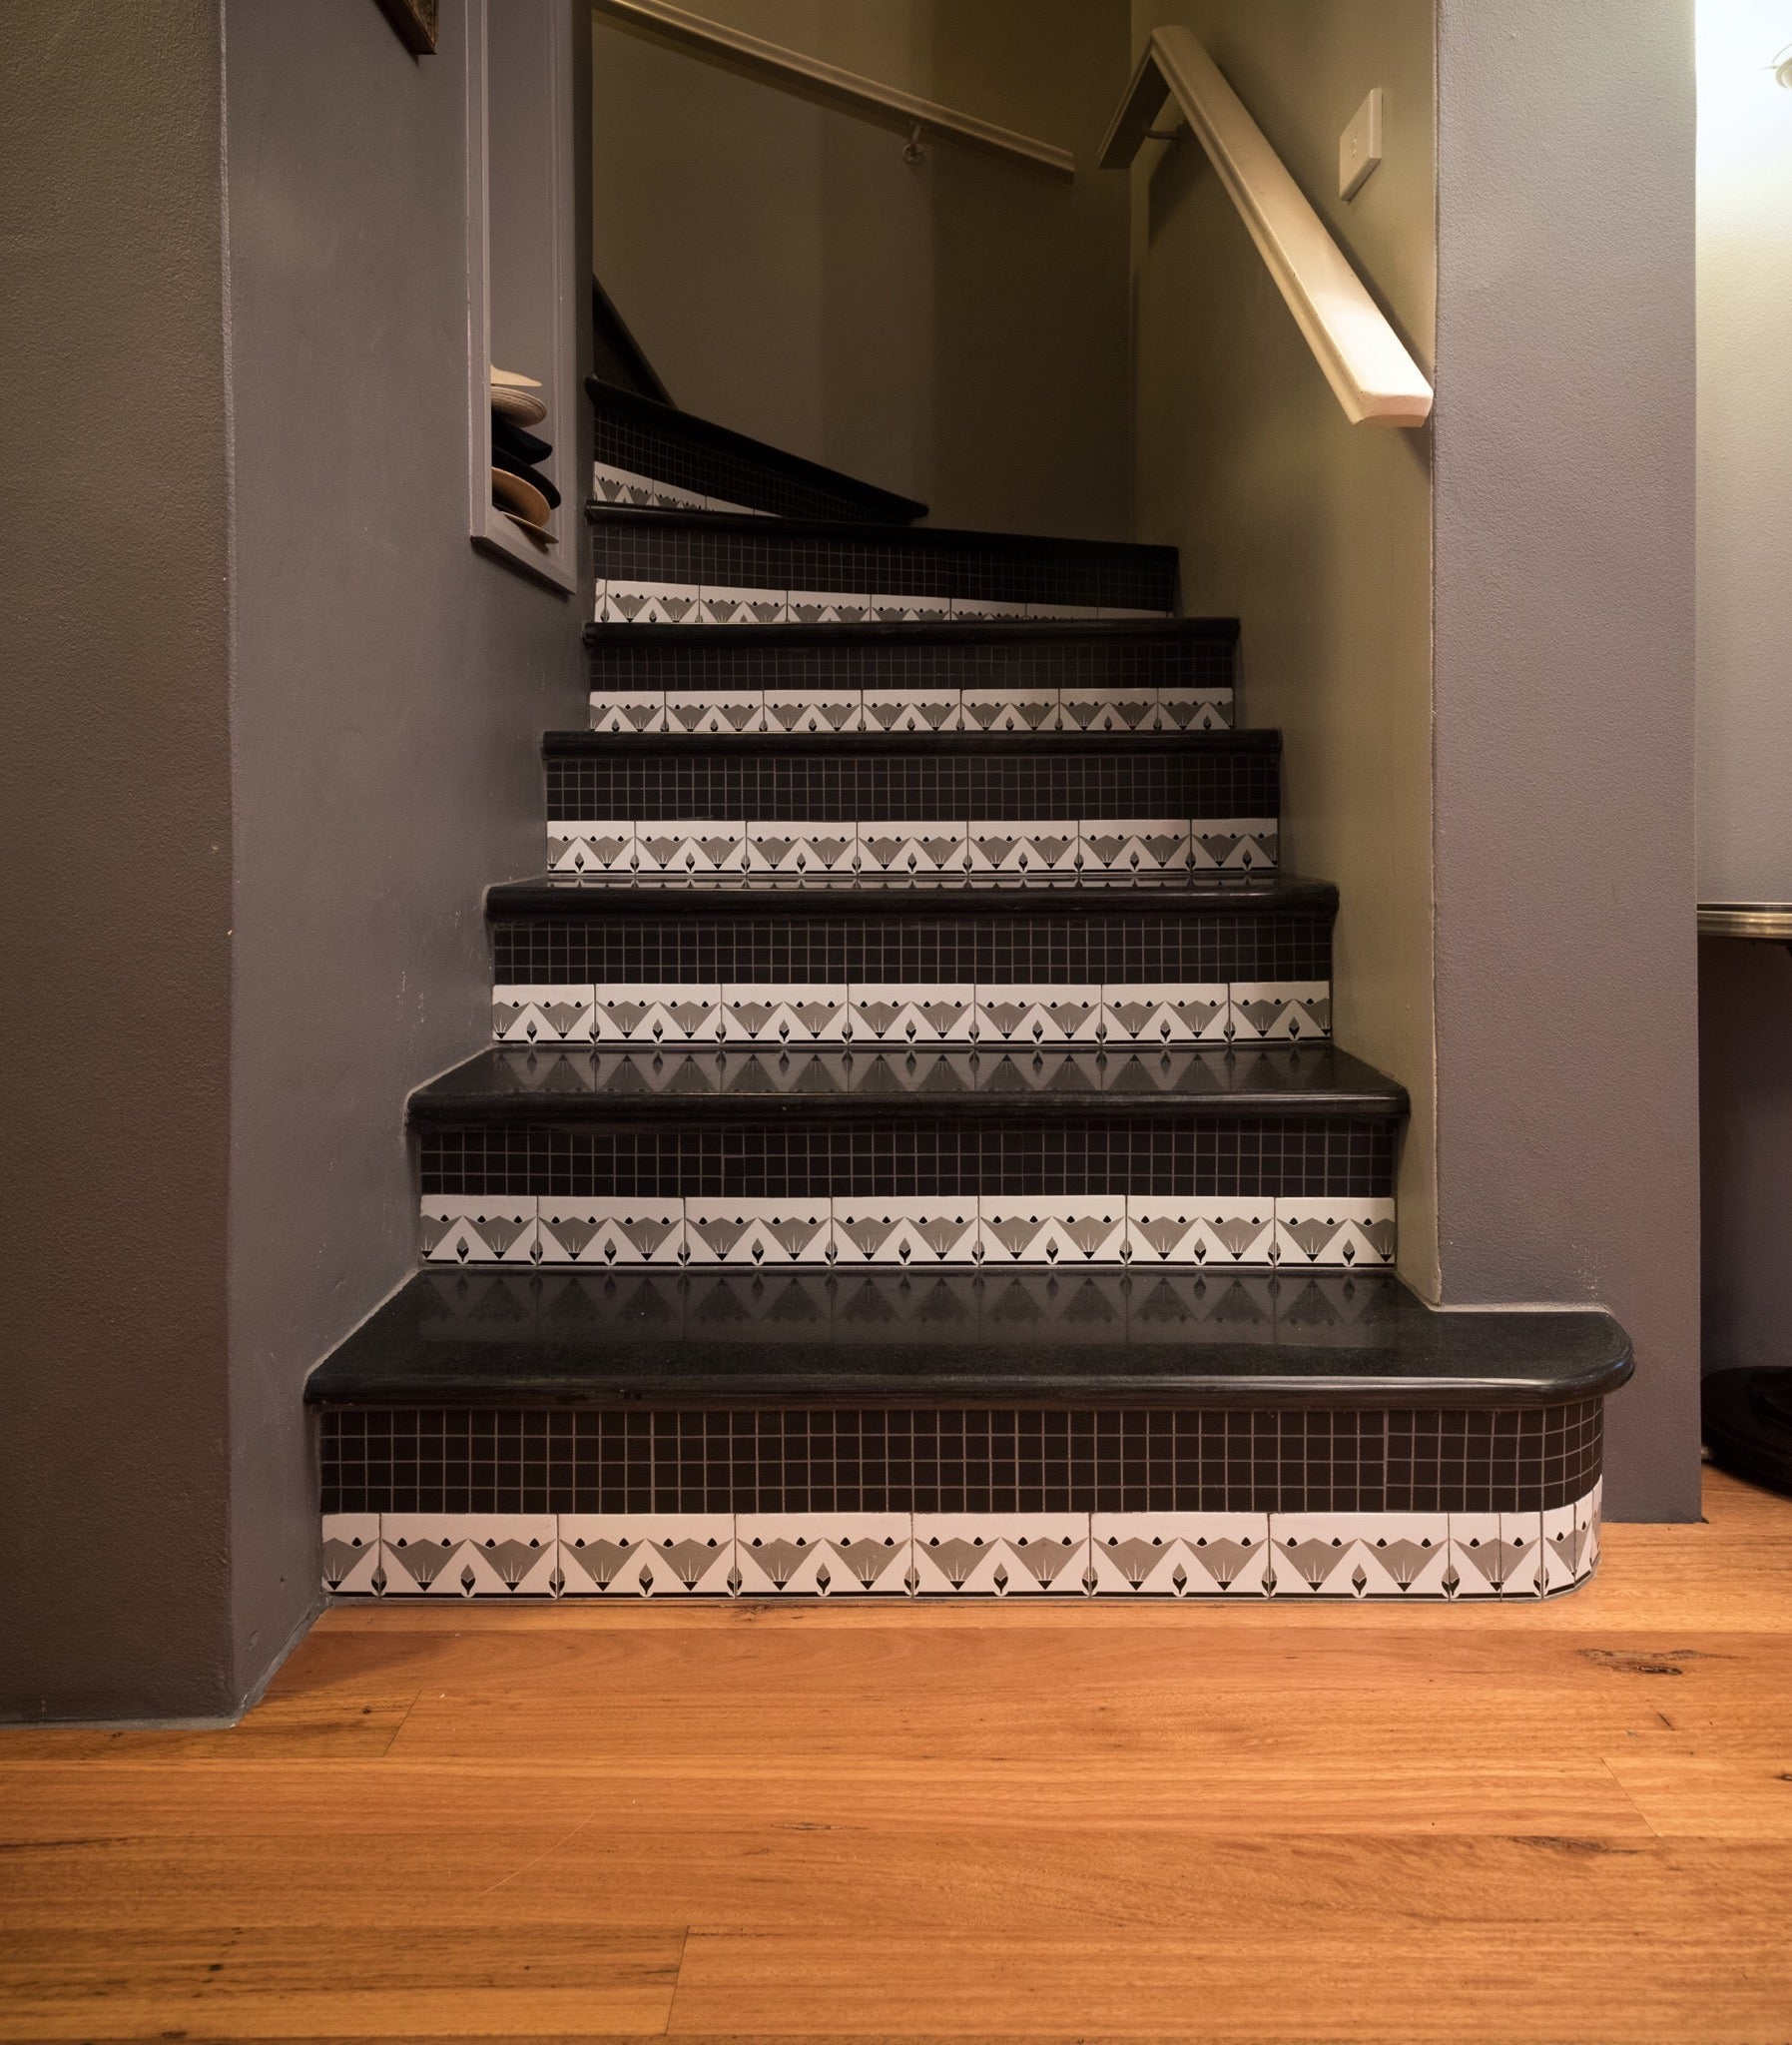 Art deco riser tiles in South Yarra home